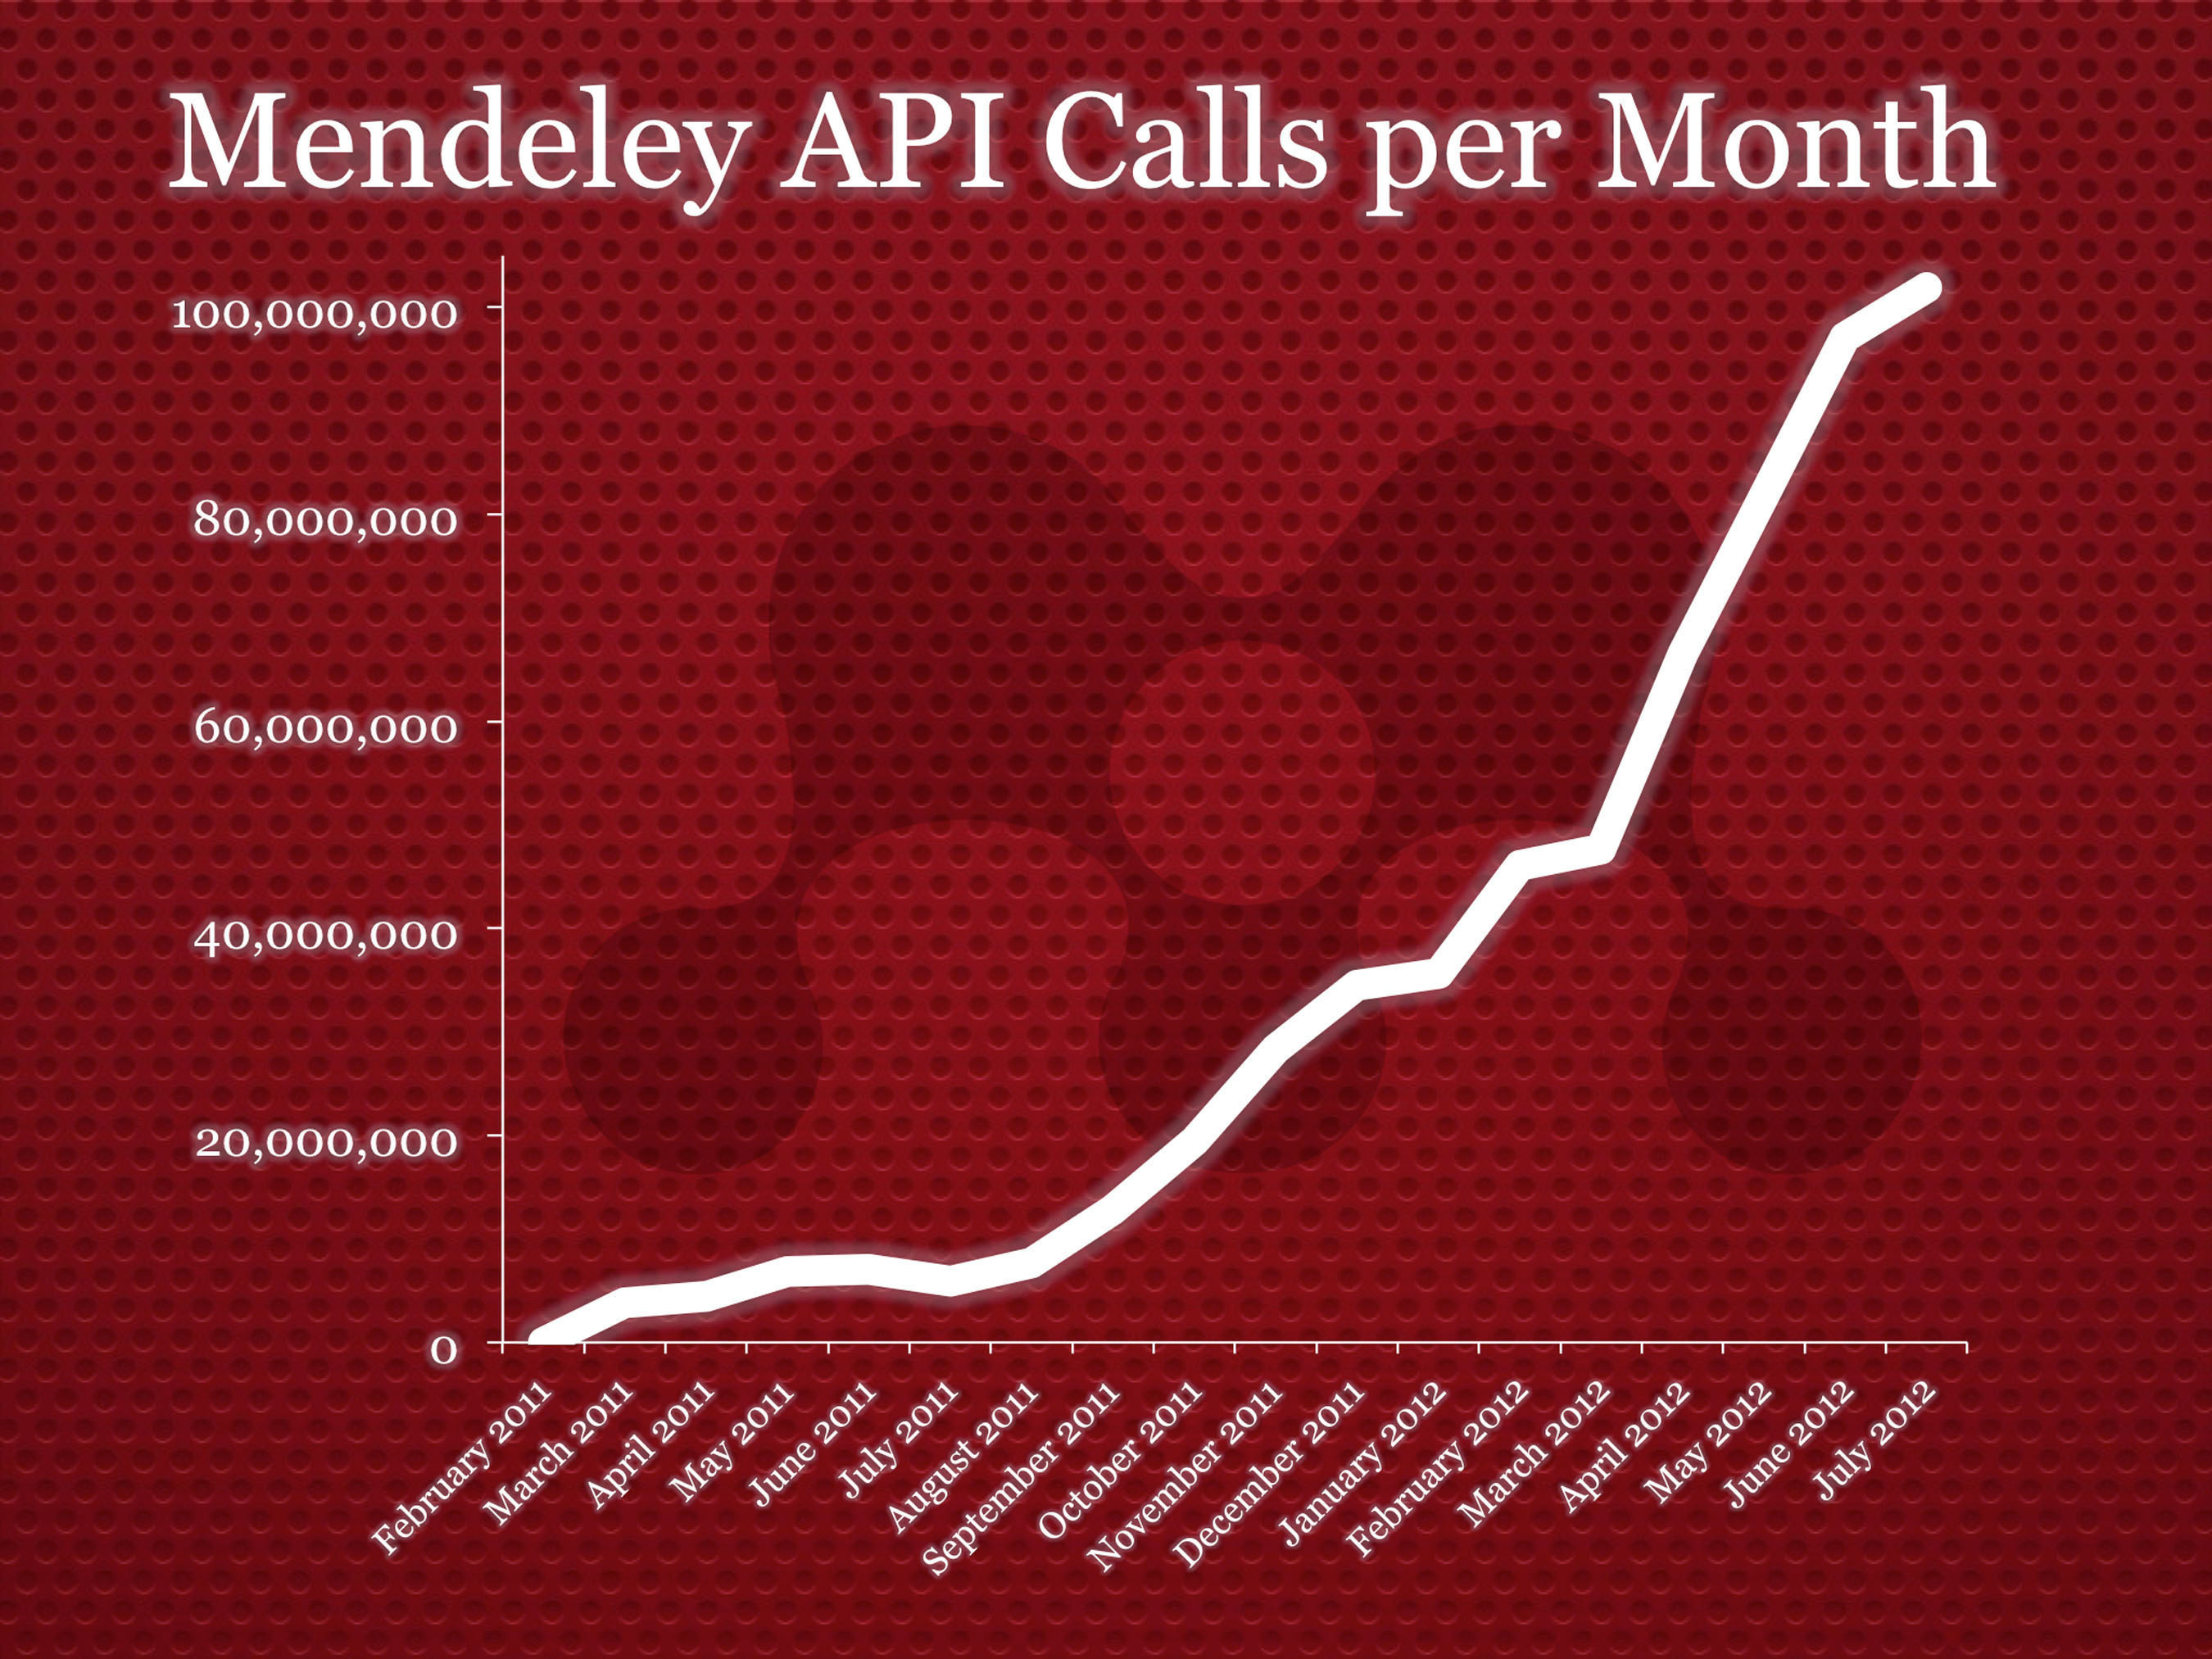 Mendeley is building an app ecosystem for science. The London-based startup now handles more than 100 million ...